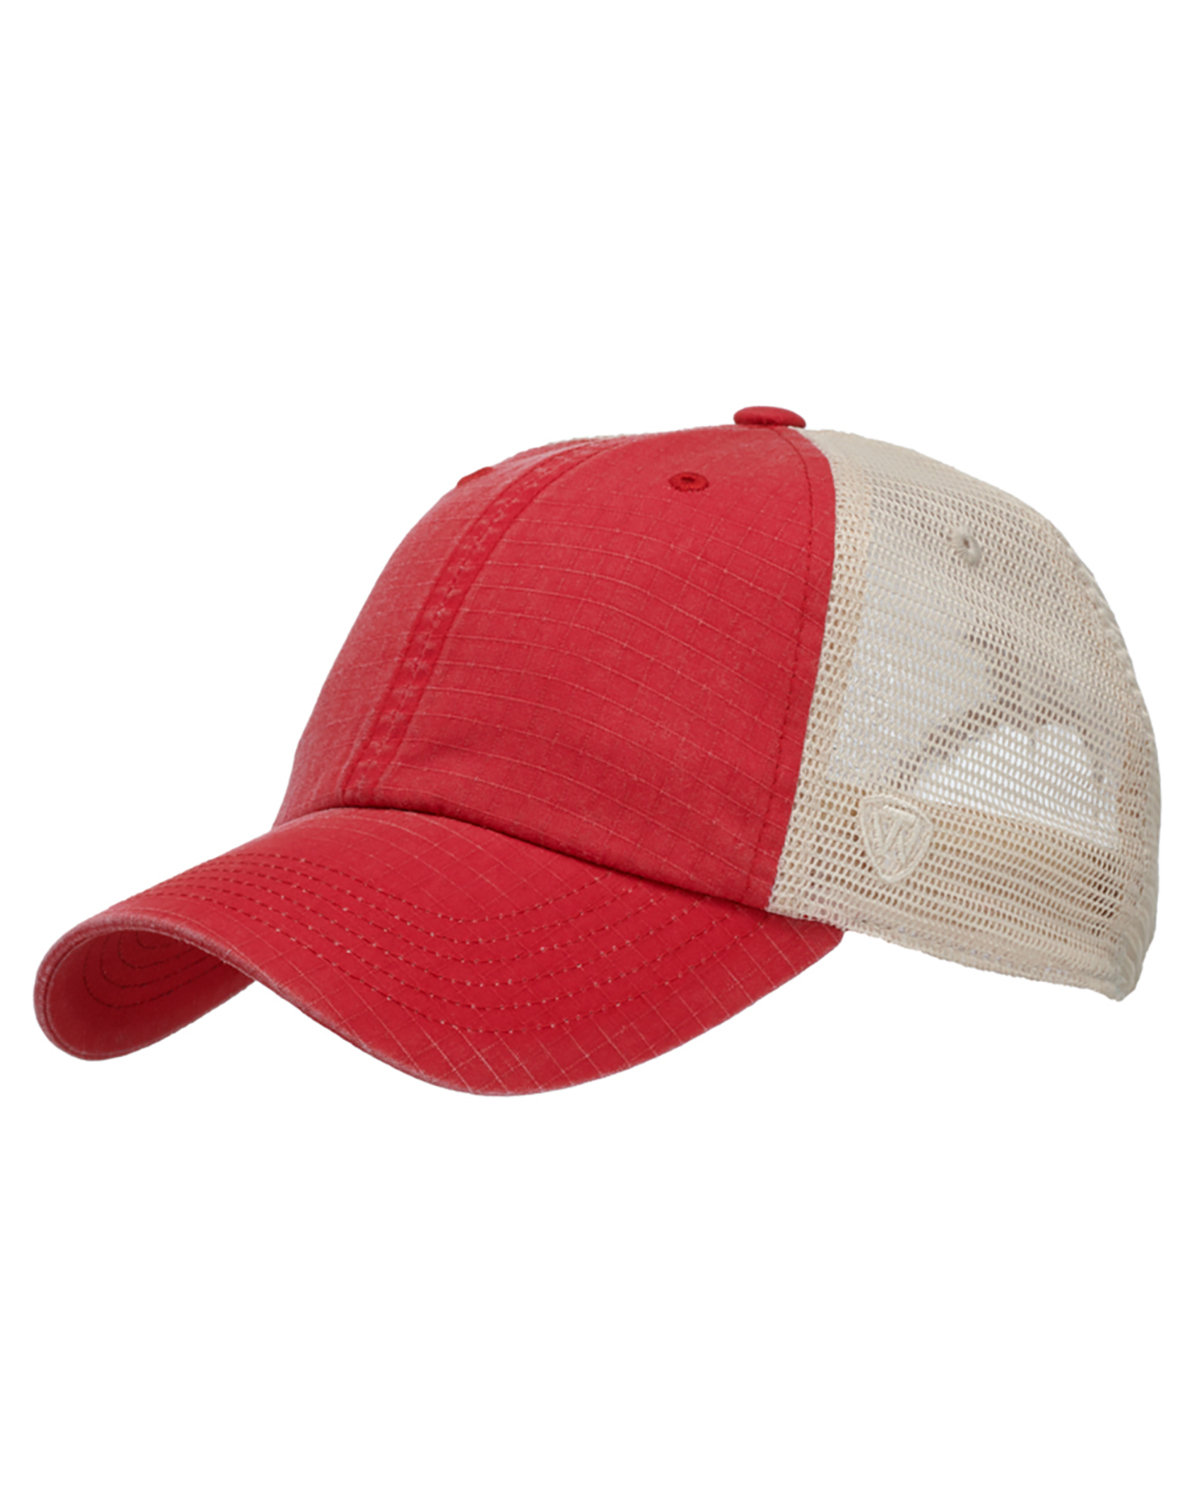 Top Of The World Riptide Ripstop Trucker Hat RED